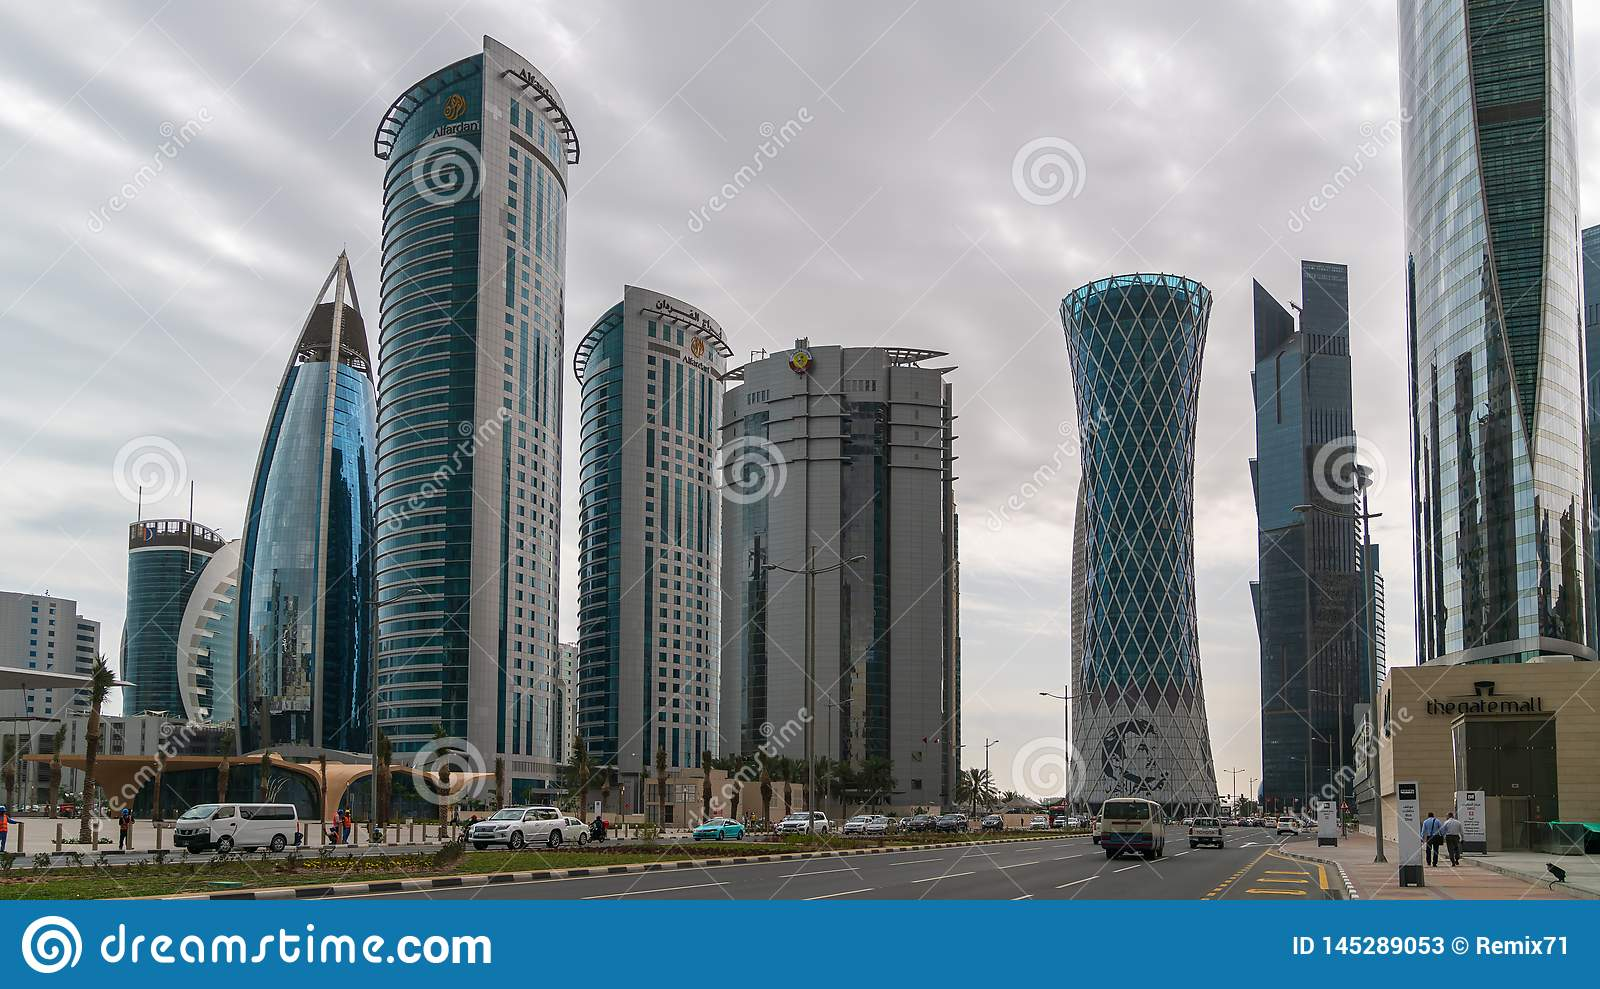 Skyscrapers in Financial District skyline in West Bay, Doha, Qatar